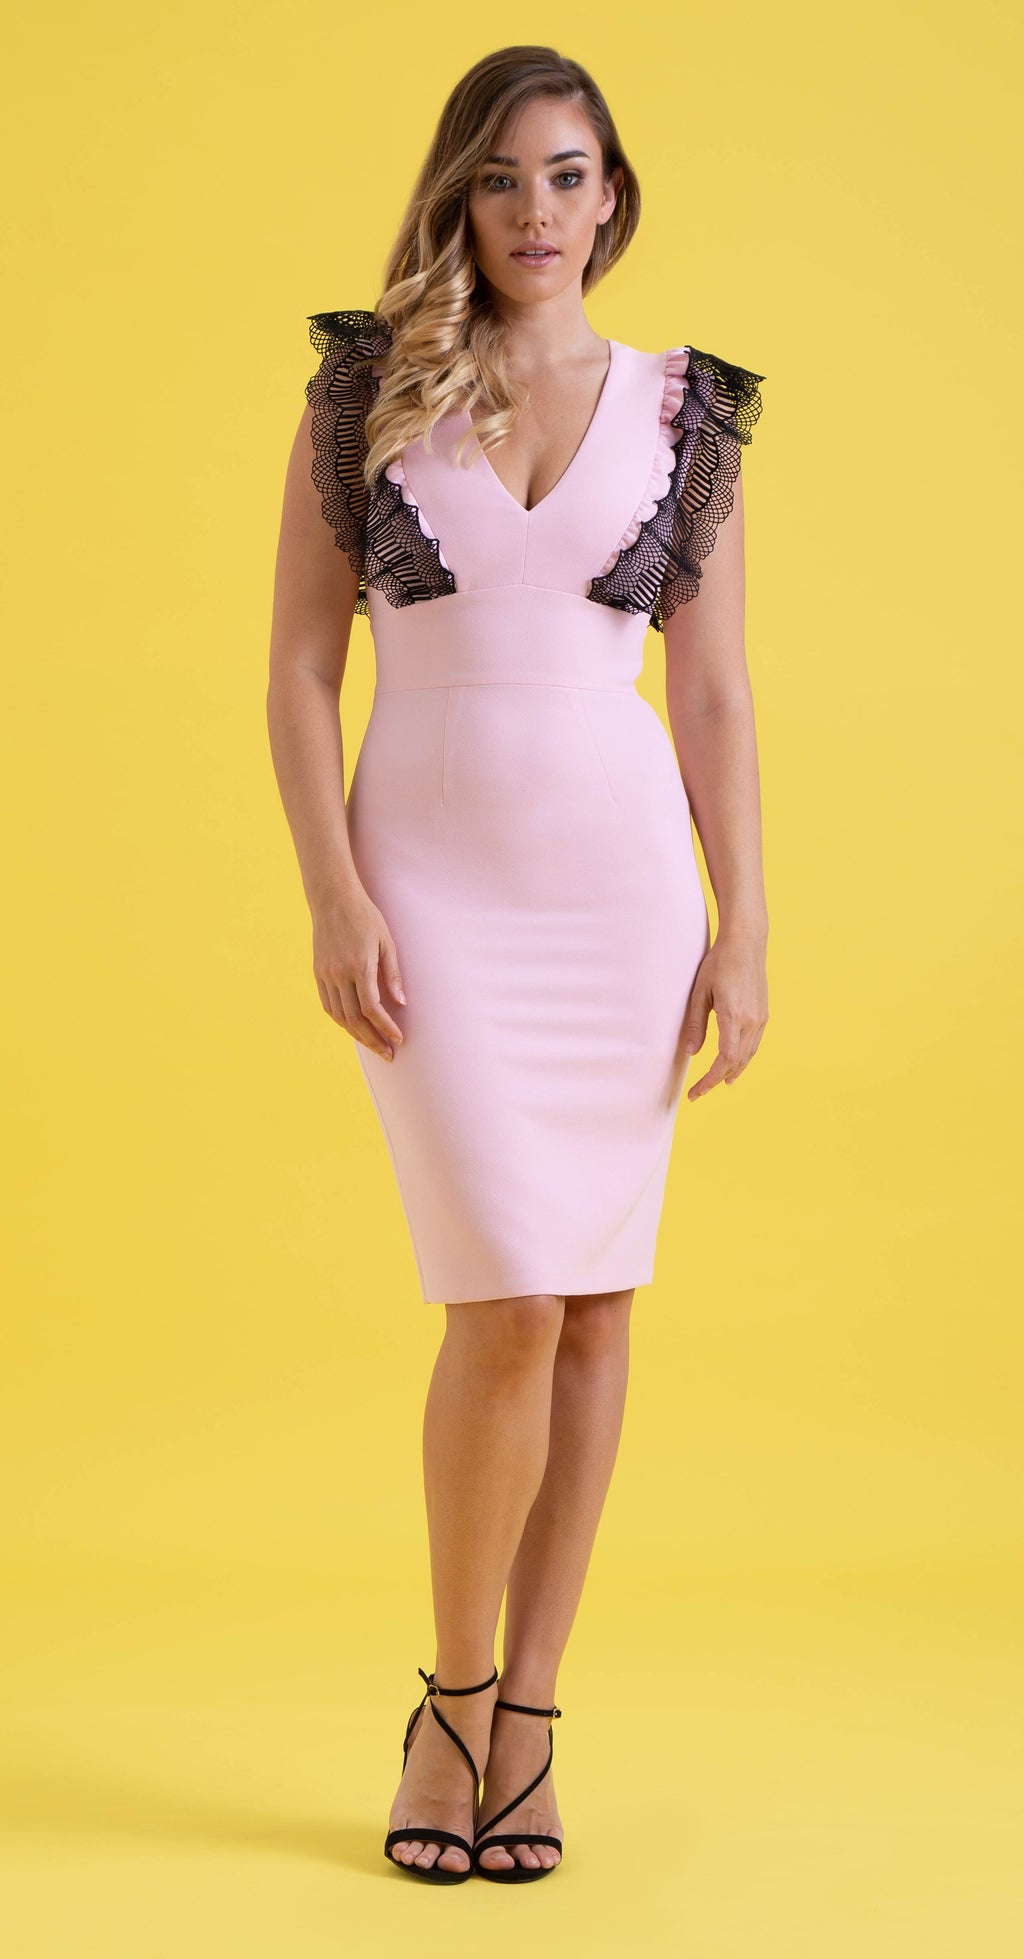 Sofia Dress DRC203 Pale Pink/Lace